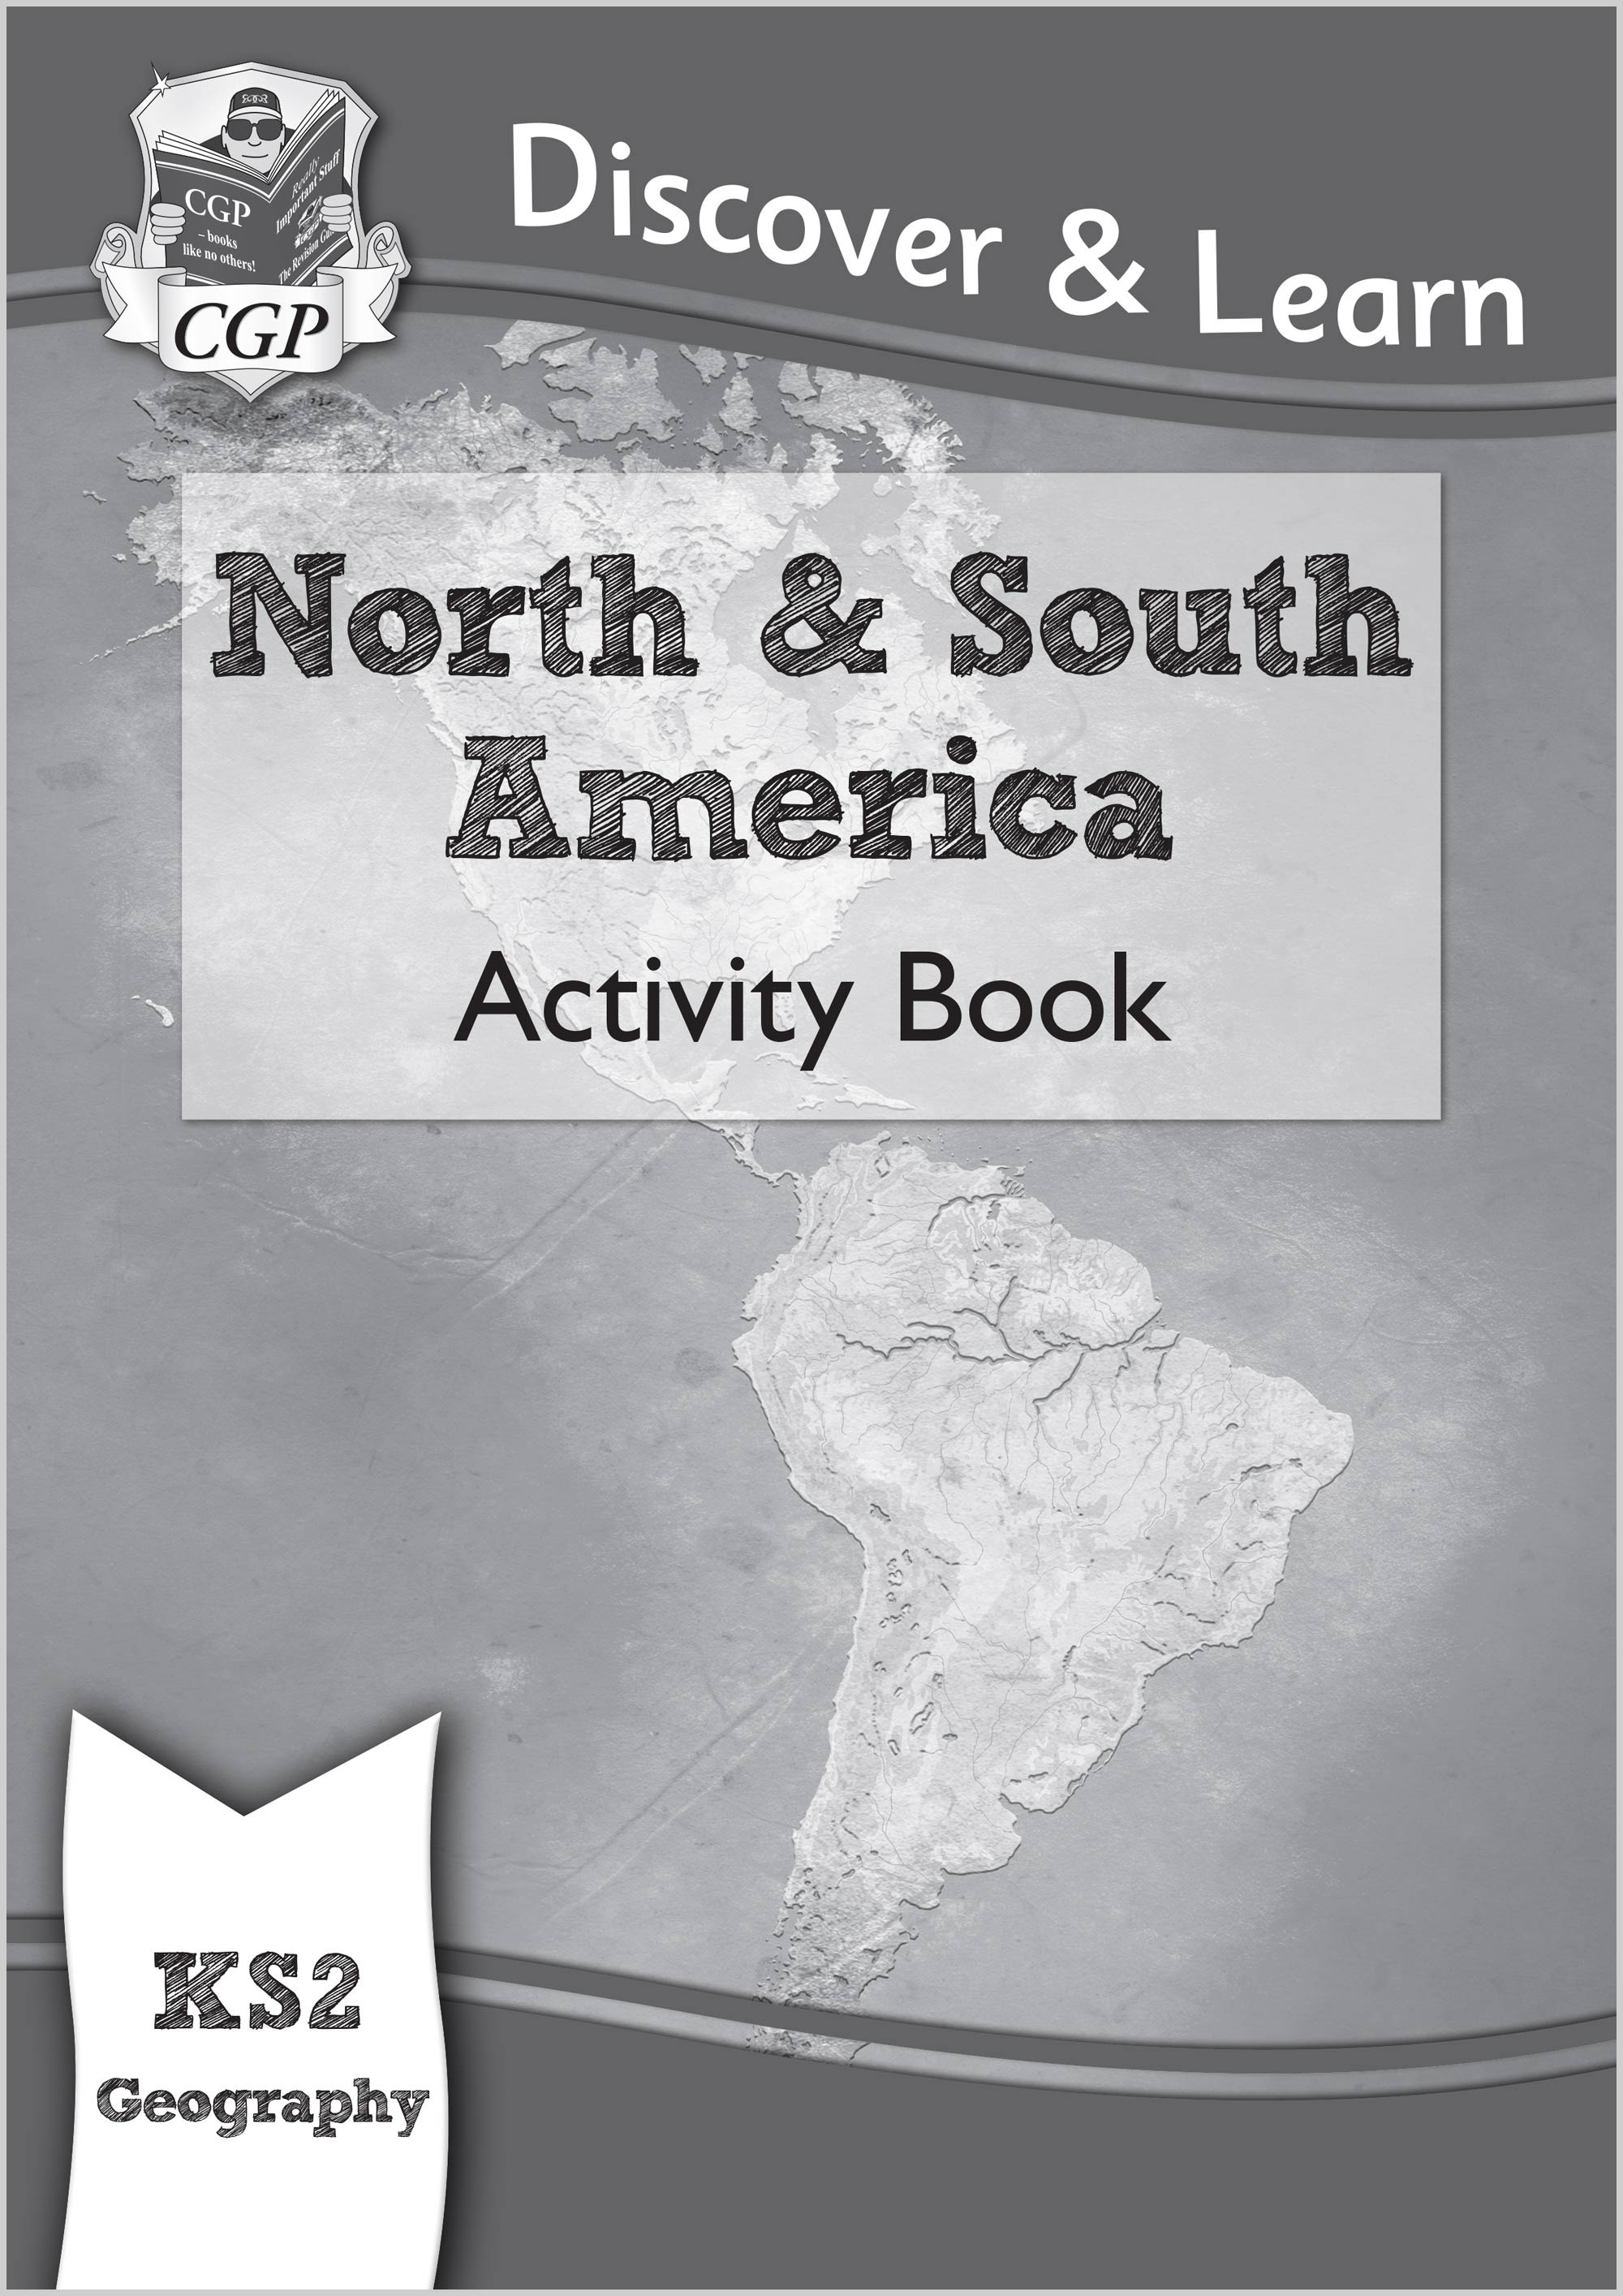 GAW21 - KS2 Discover & Learn: Geography - North and South America Activity Book